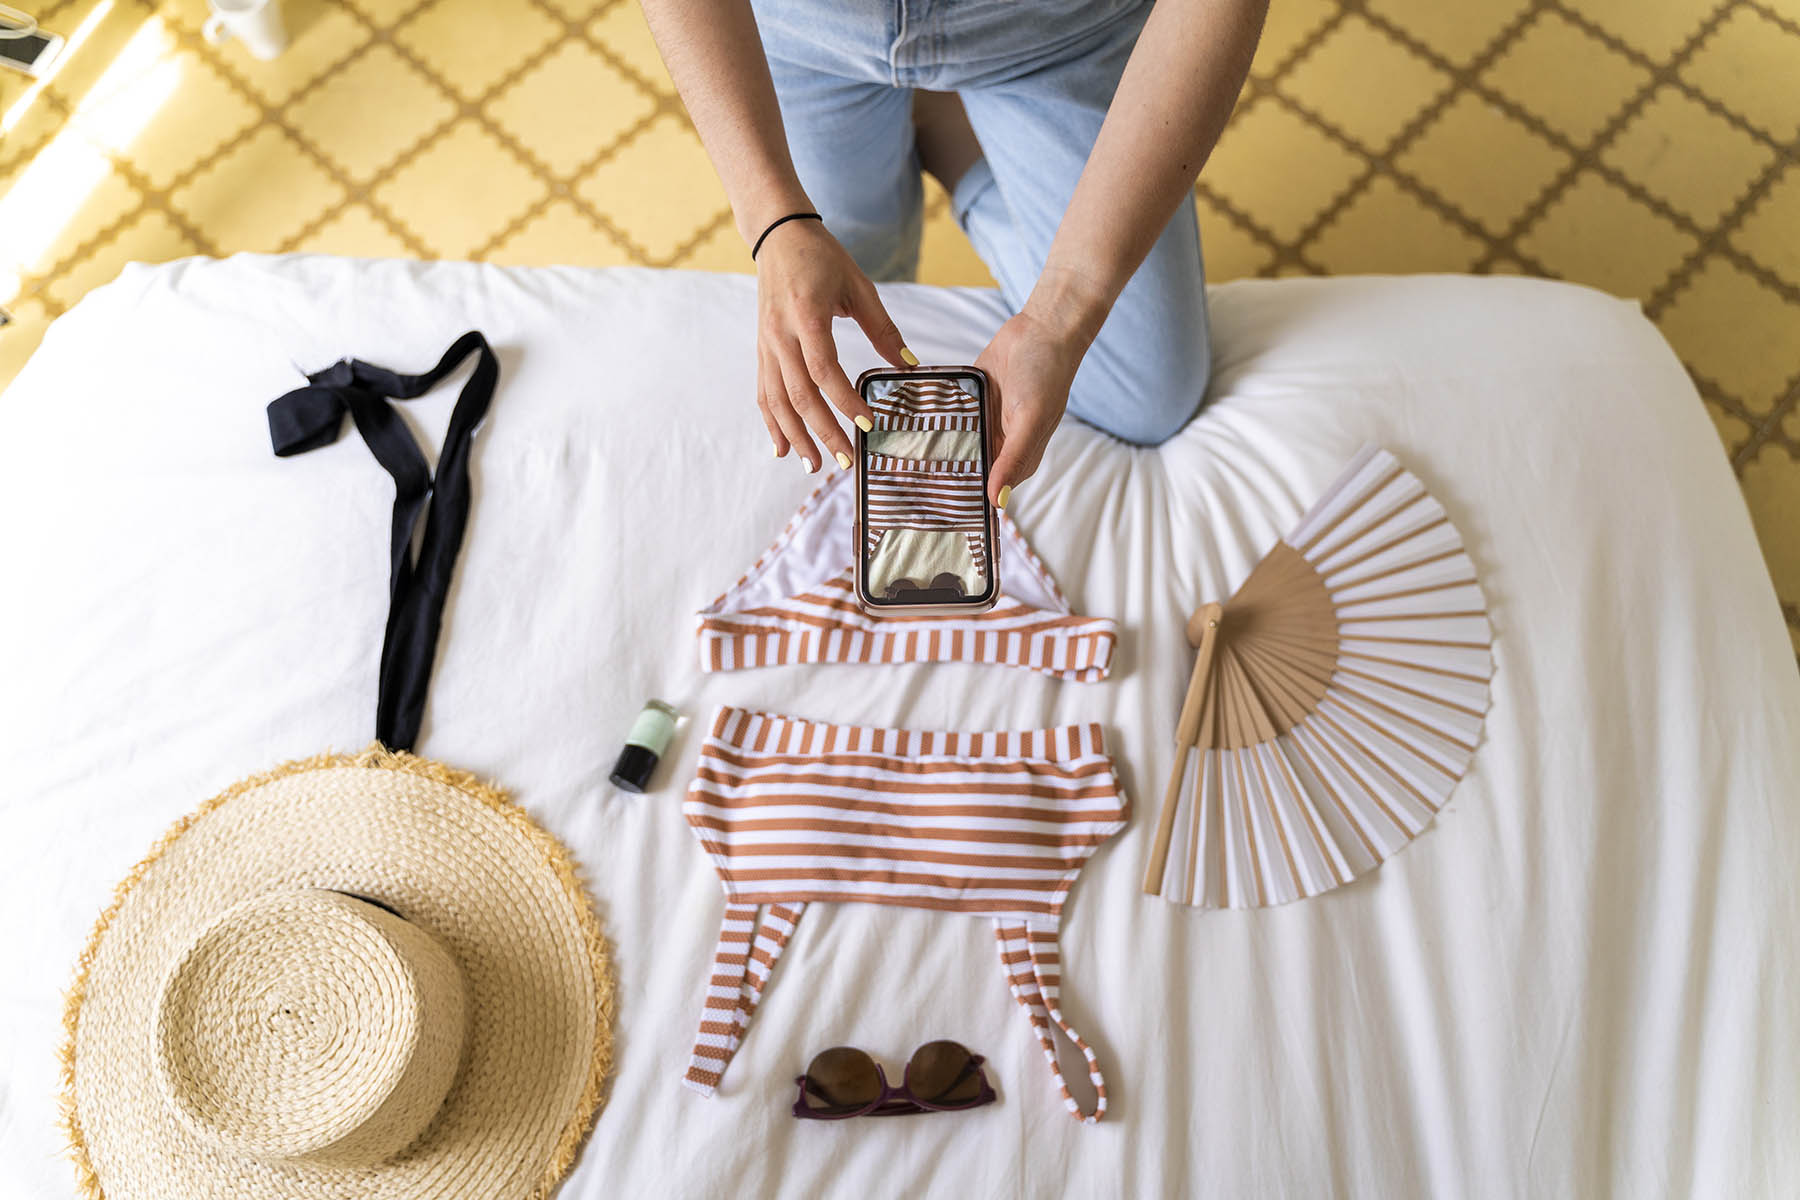 Woman taking picture of sale items laid out on bed